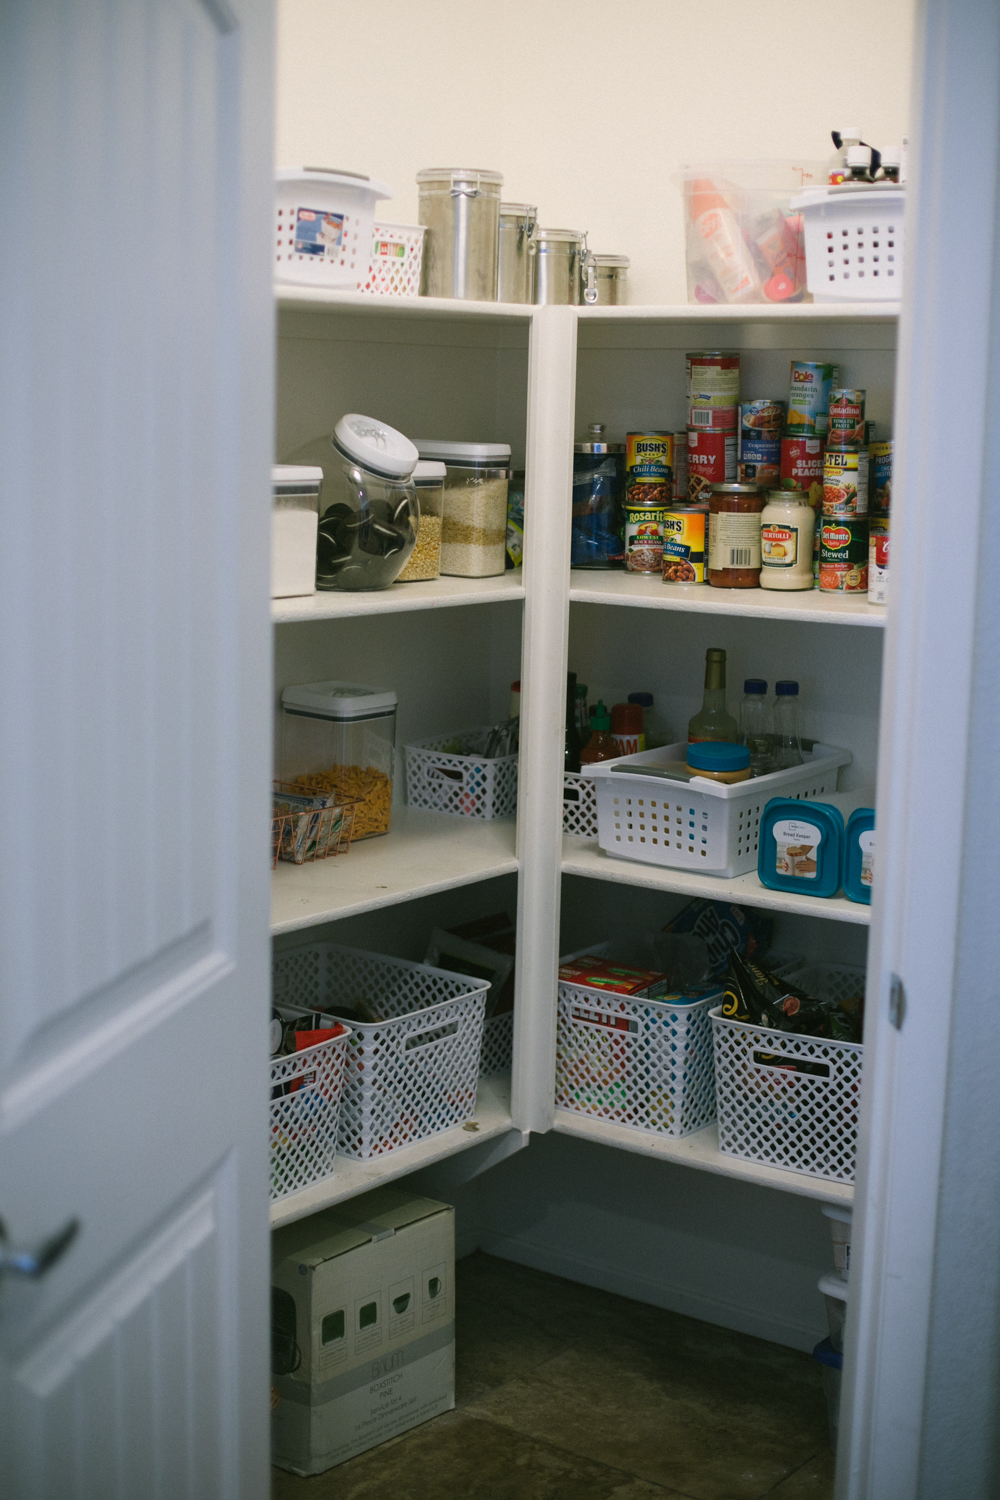 Pantry Organization Tips by popular Las Vegas bloggers Life of a Sister